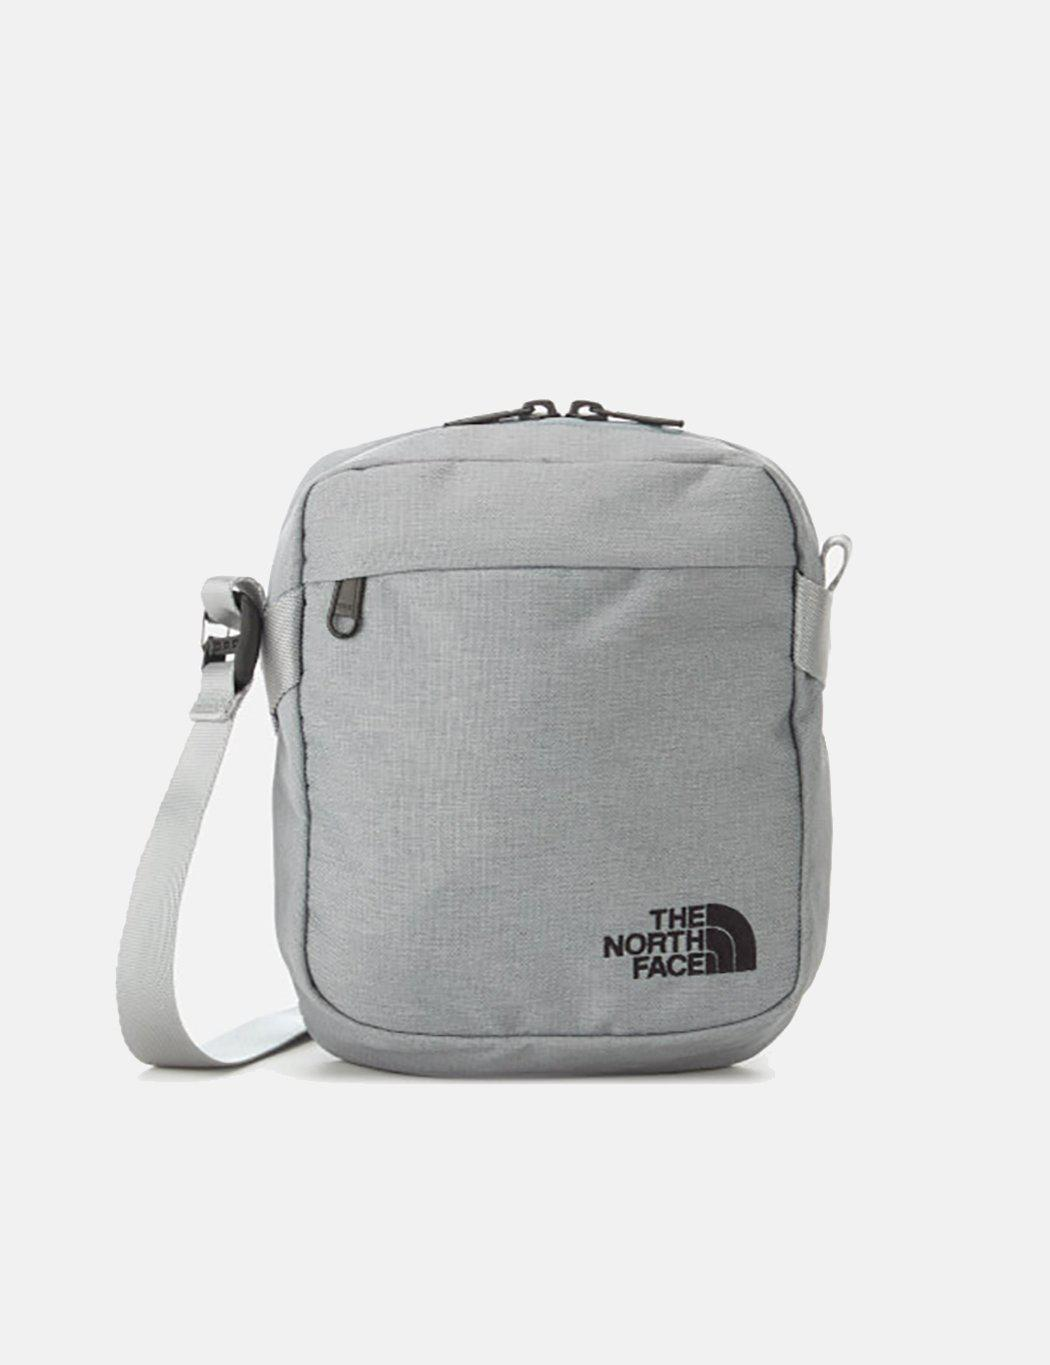 ec1cb4712d The North Face Convertible Shoulder Bag in Gray for Men - Save 9% - Lyst